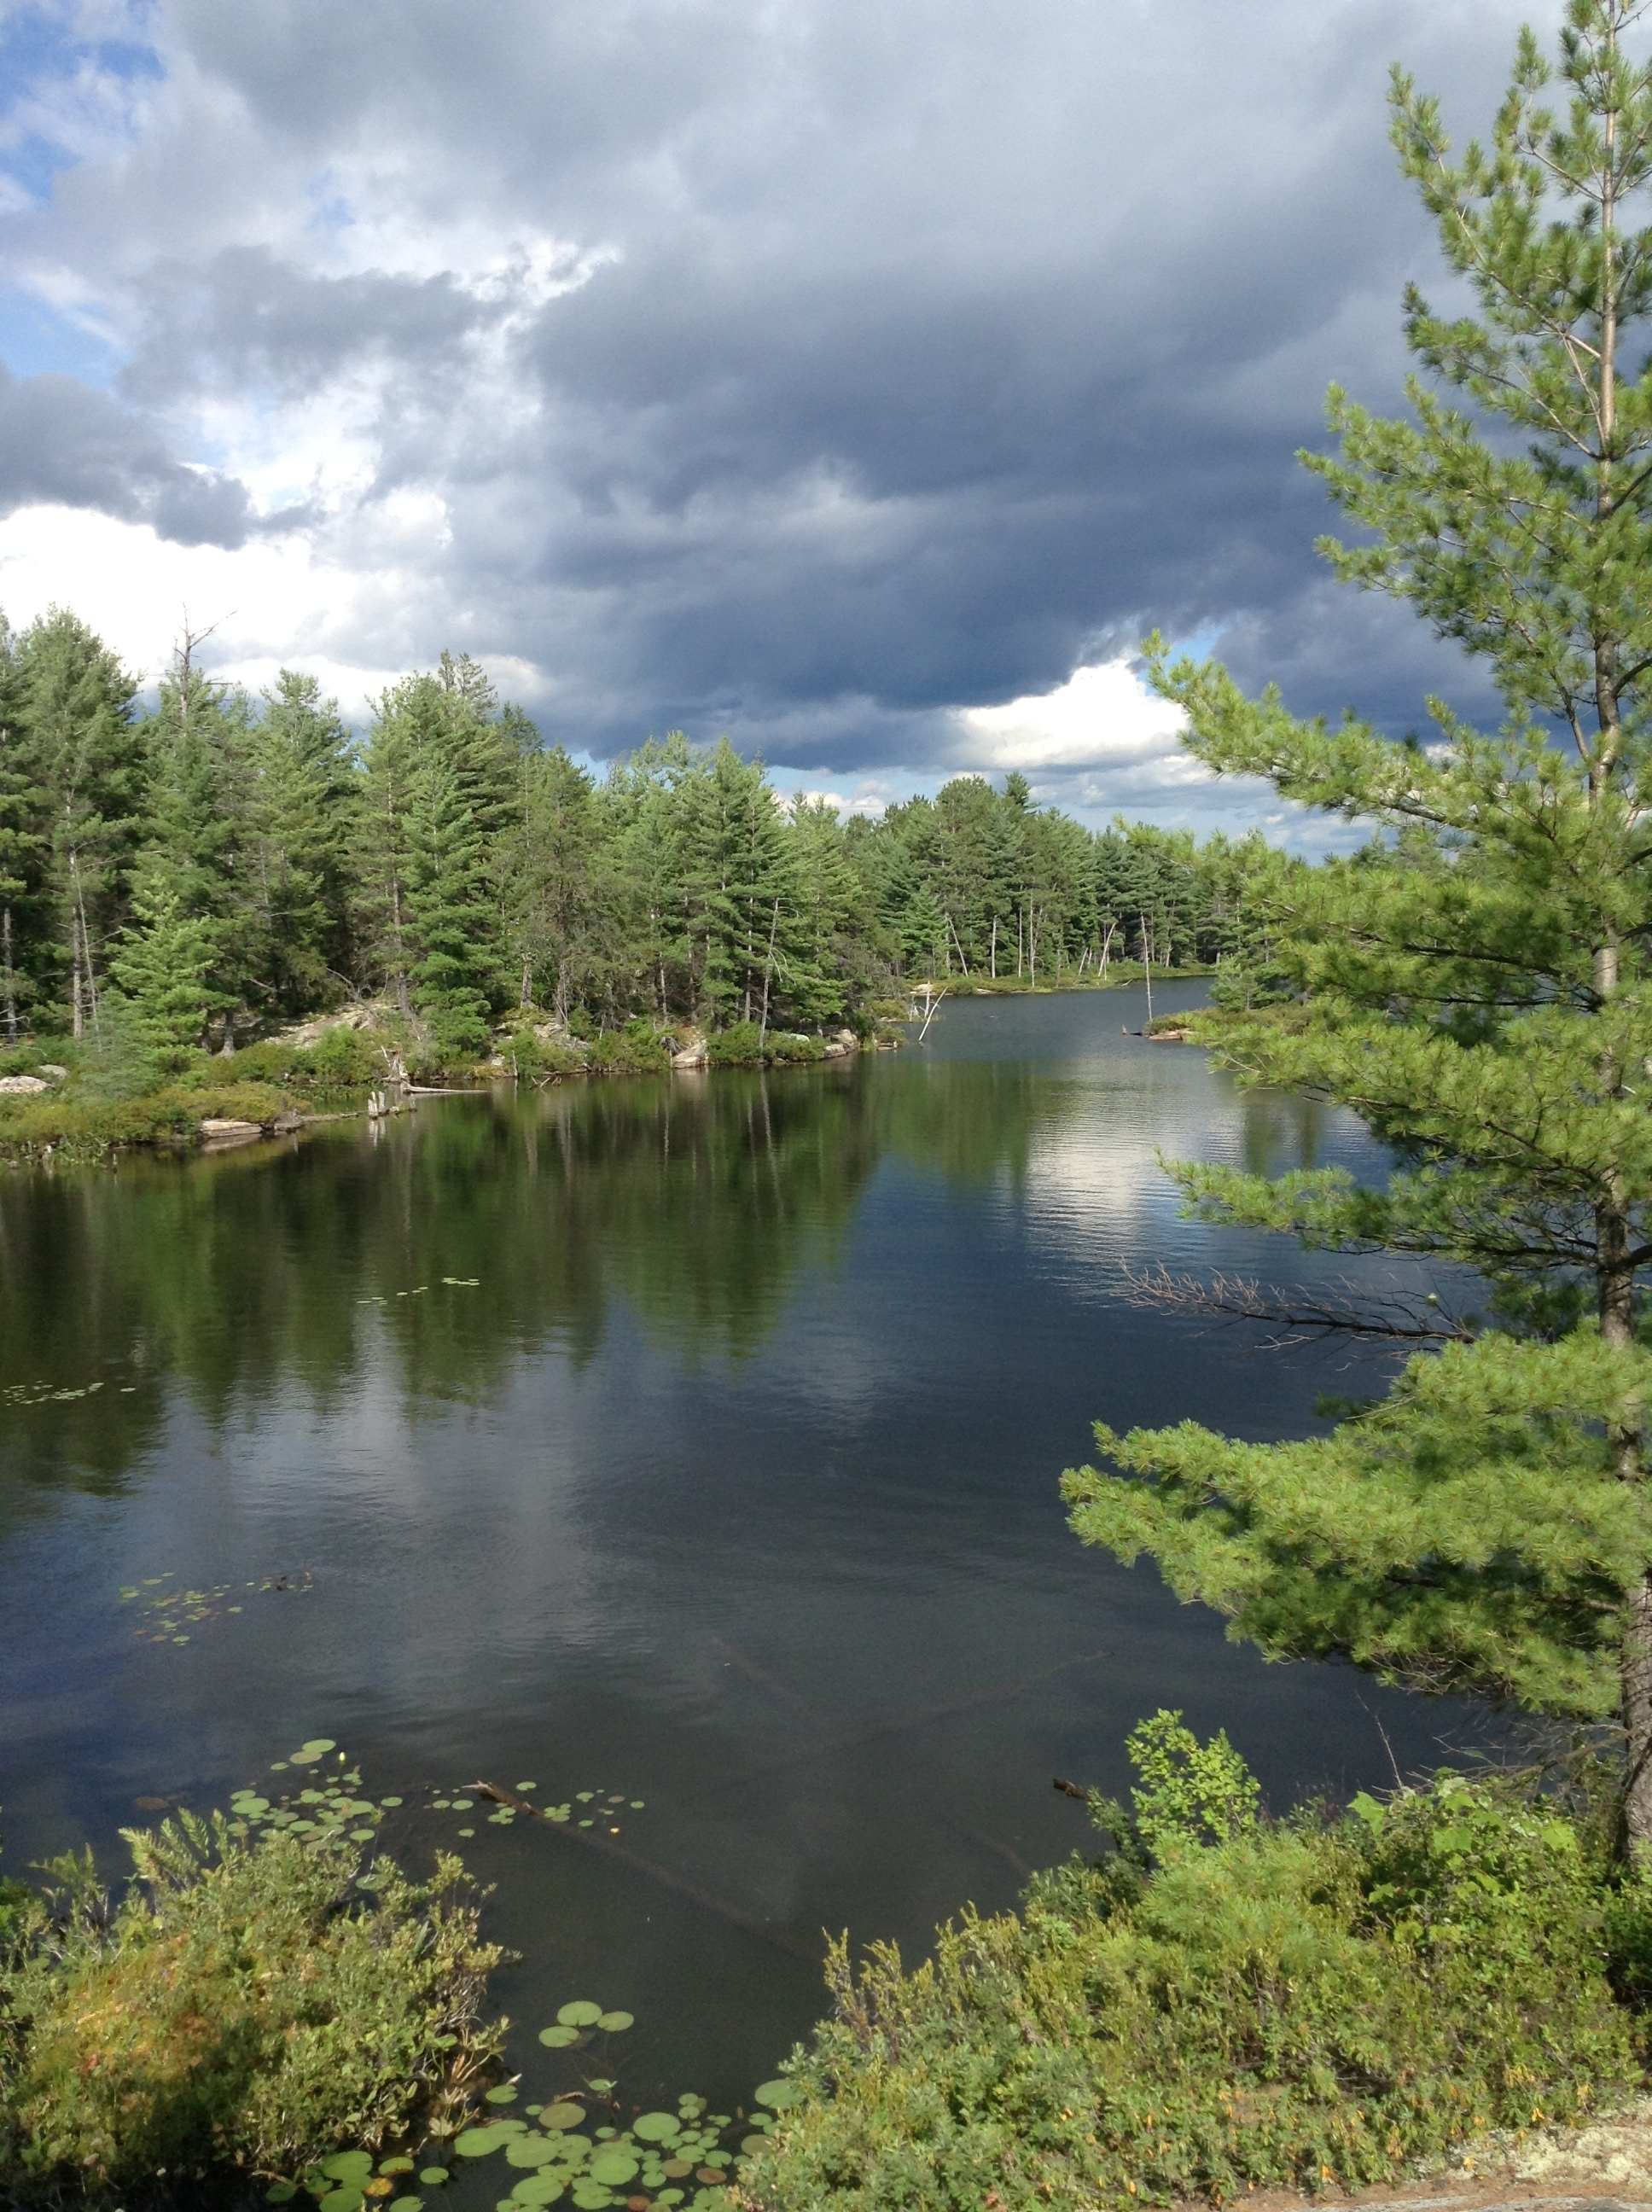 Hikking in French River